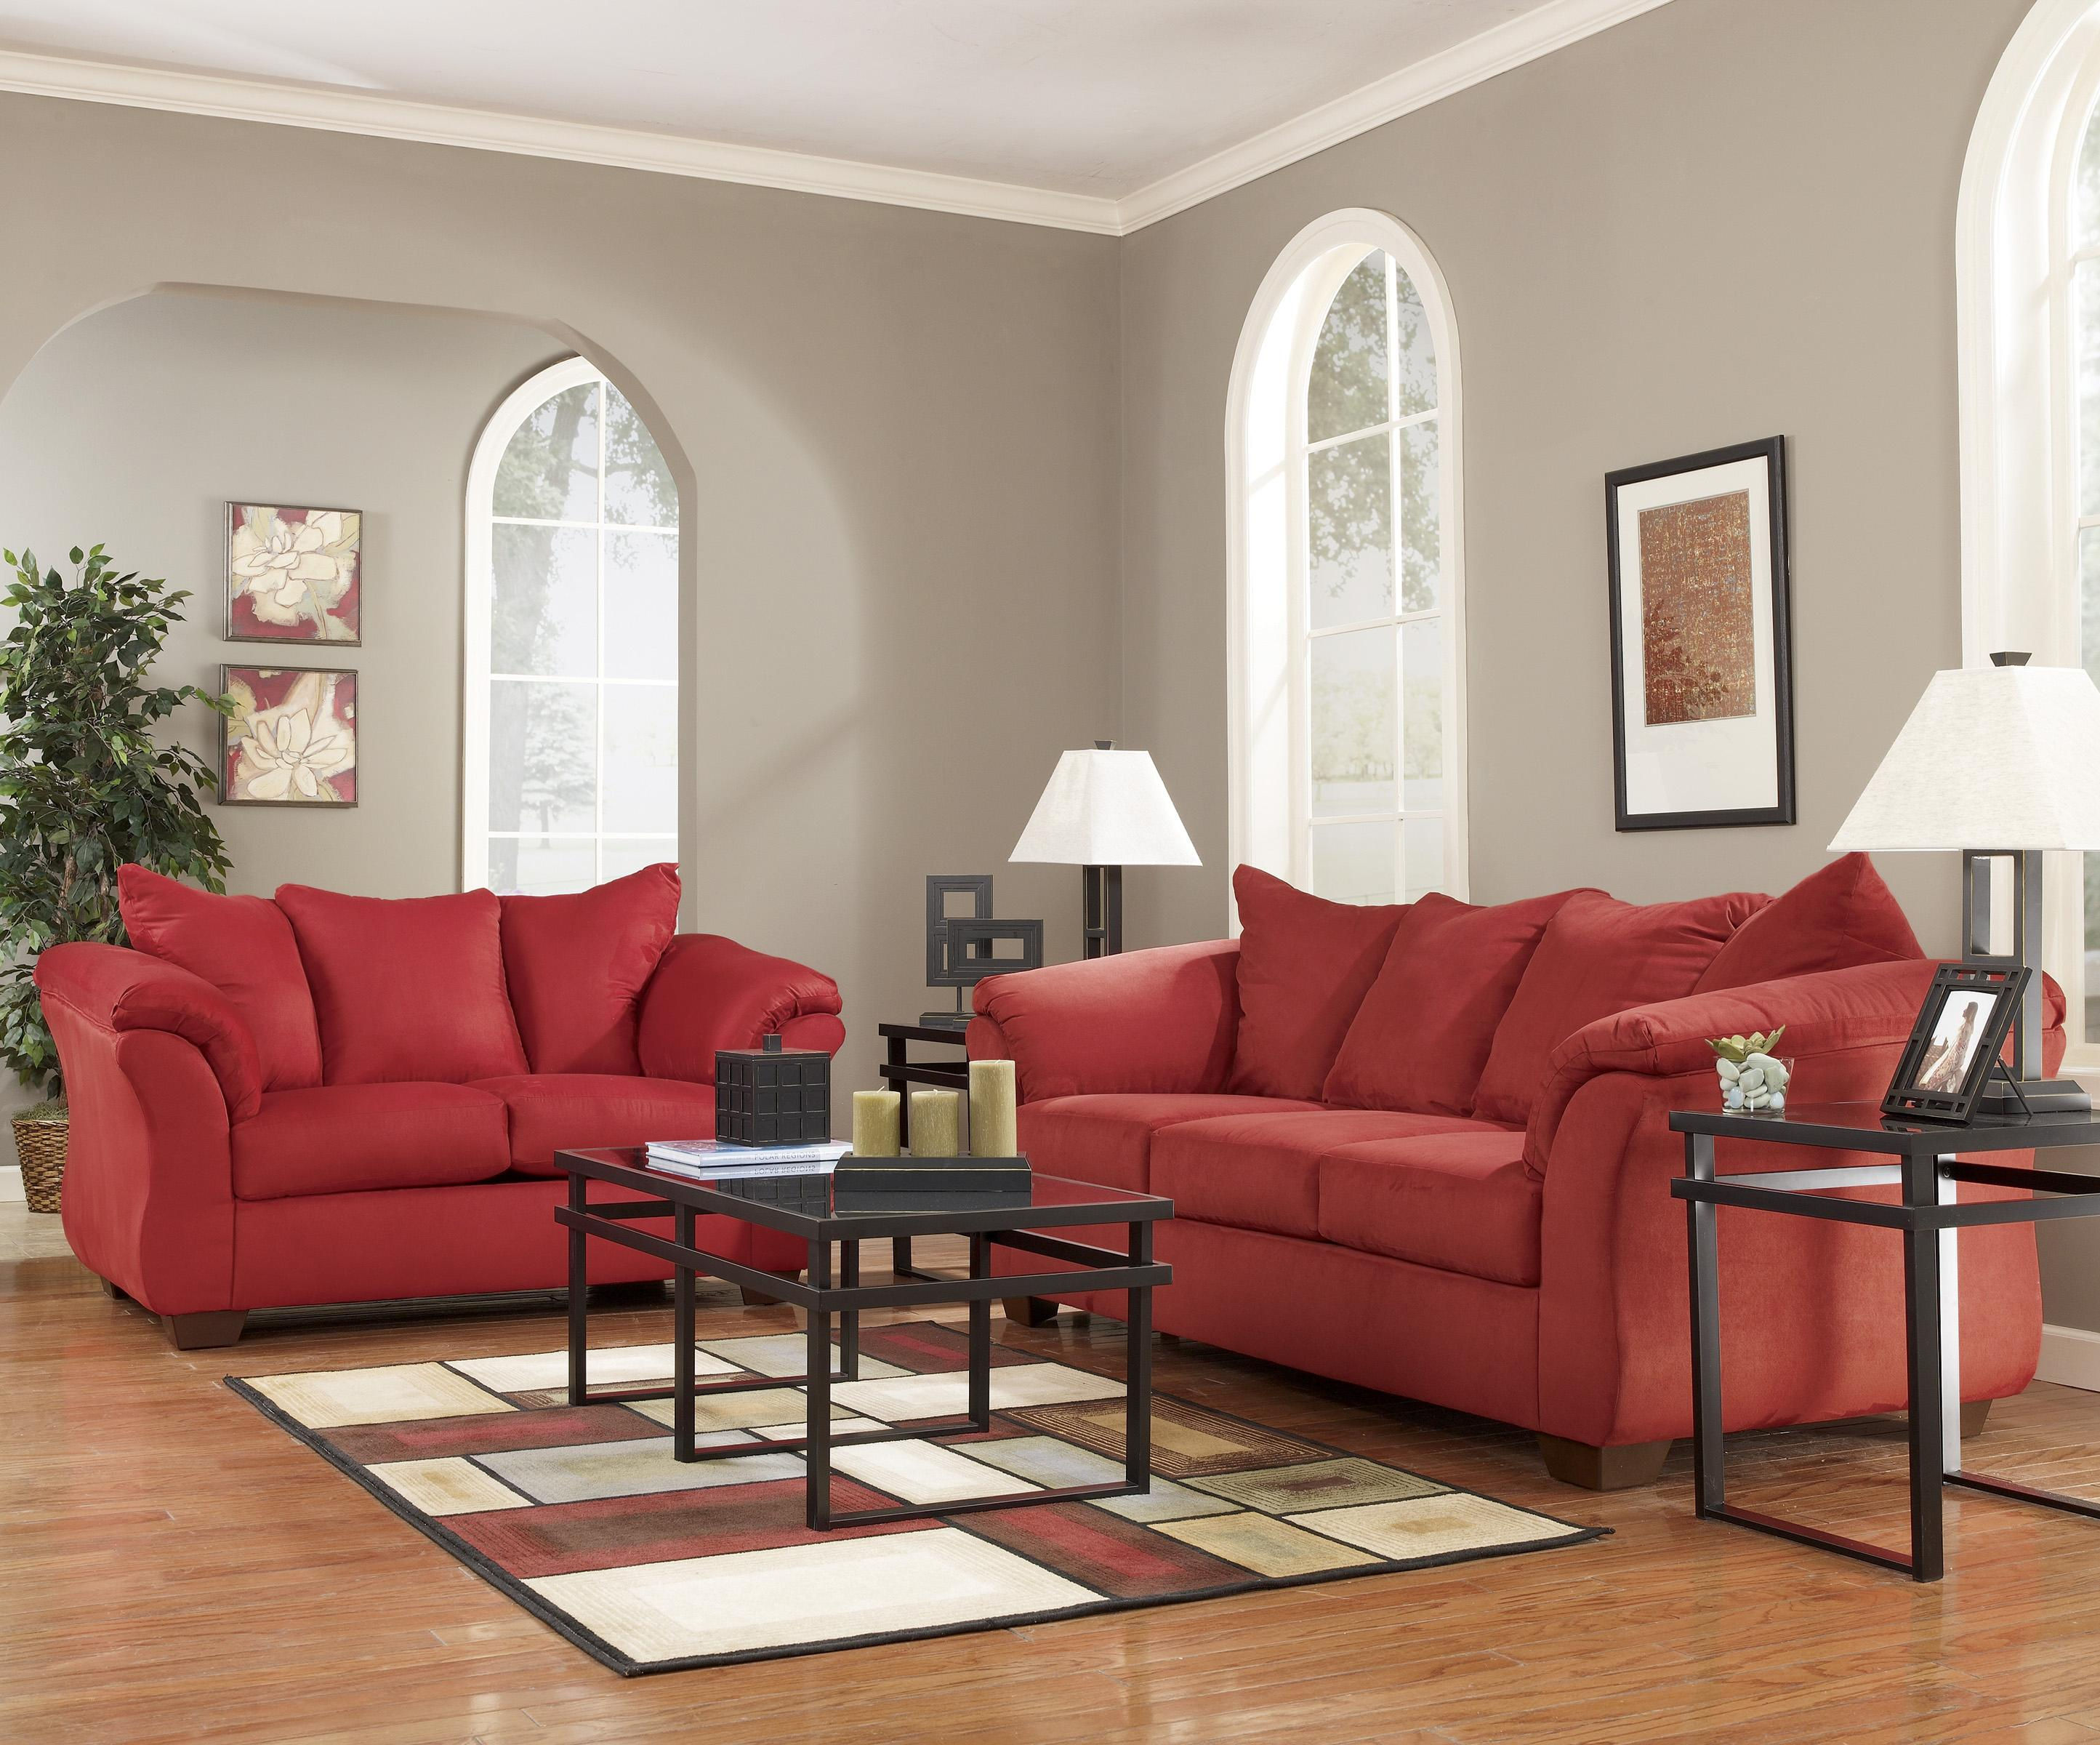 Contemporary Stationary Sofa With Flared Back Pillows By